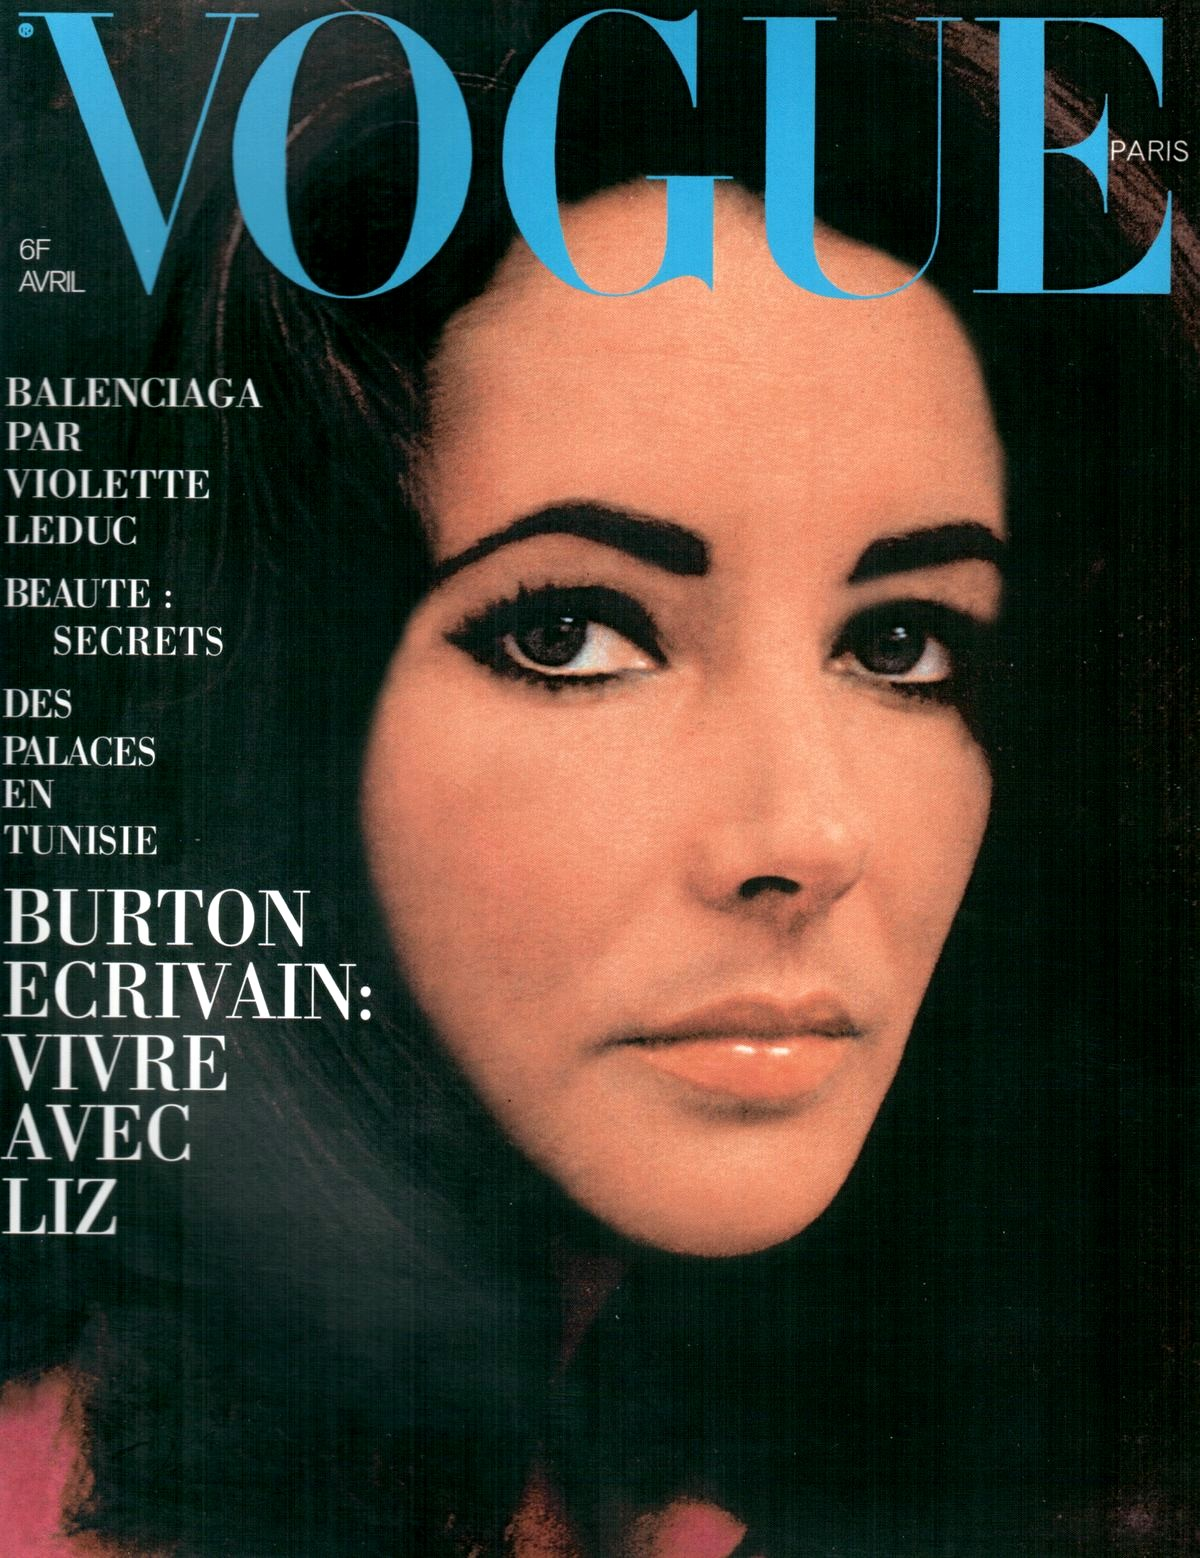 Vogue Covers 1930s 1980s